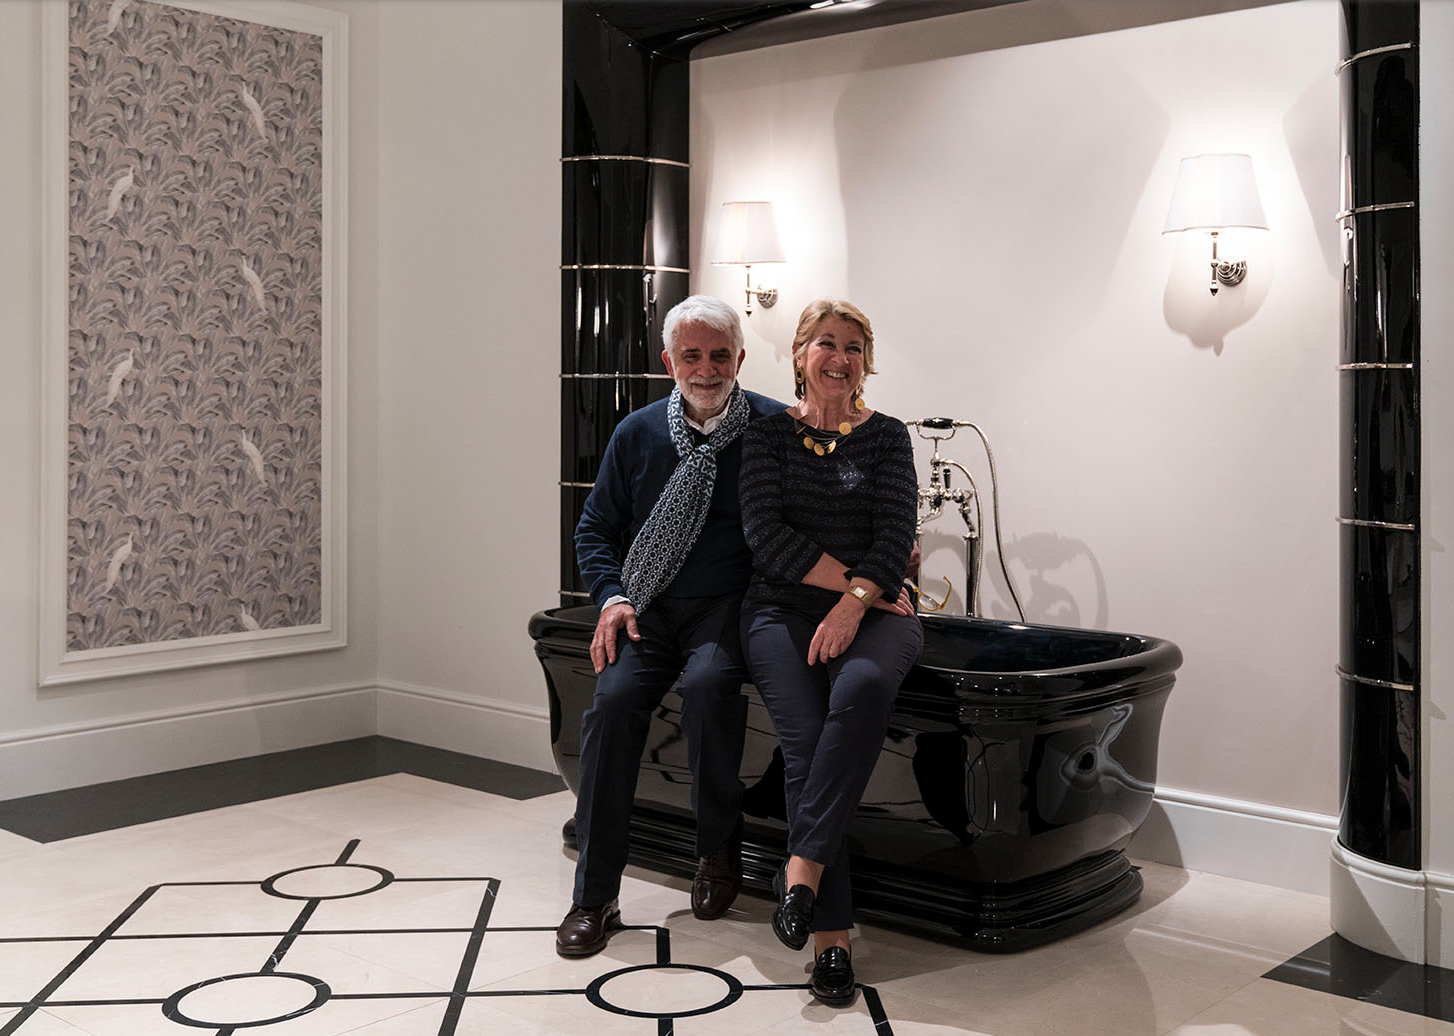 Architects Gianni and Paola Tanini, who founded Devon & Devon together in Florence, Italy, in 1989, at Salone del Mobile.